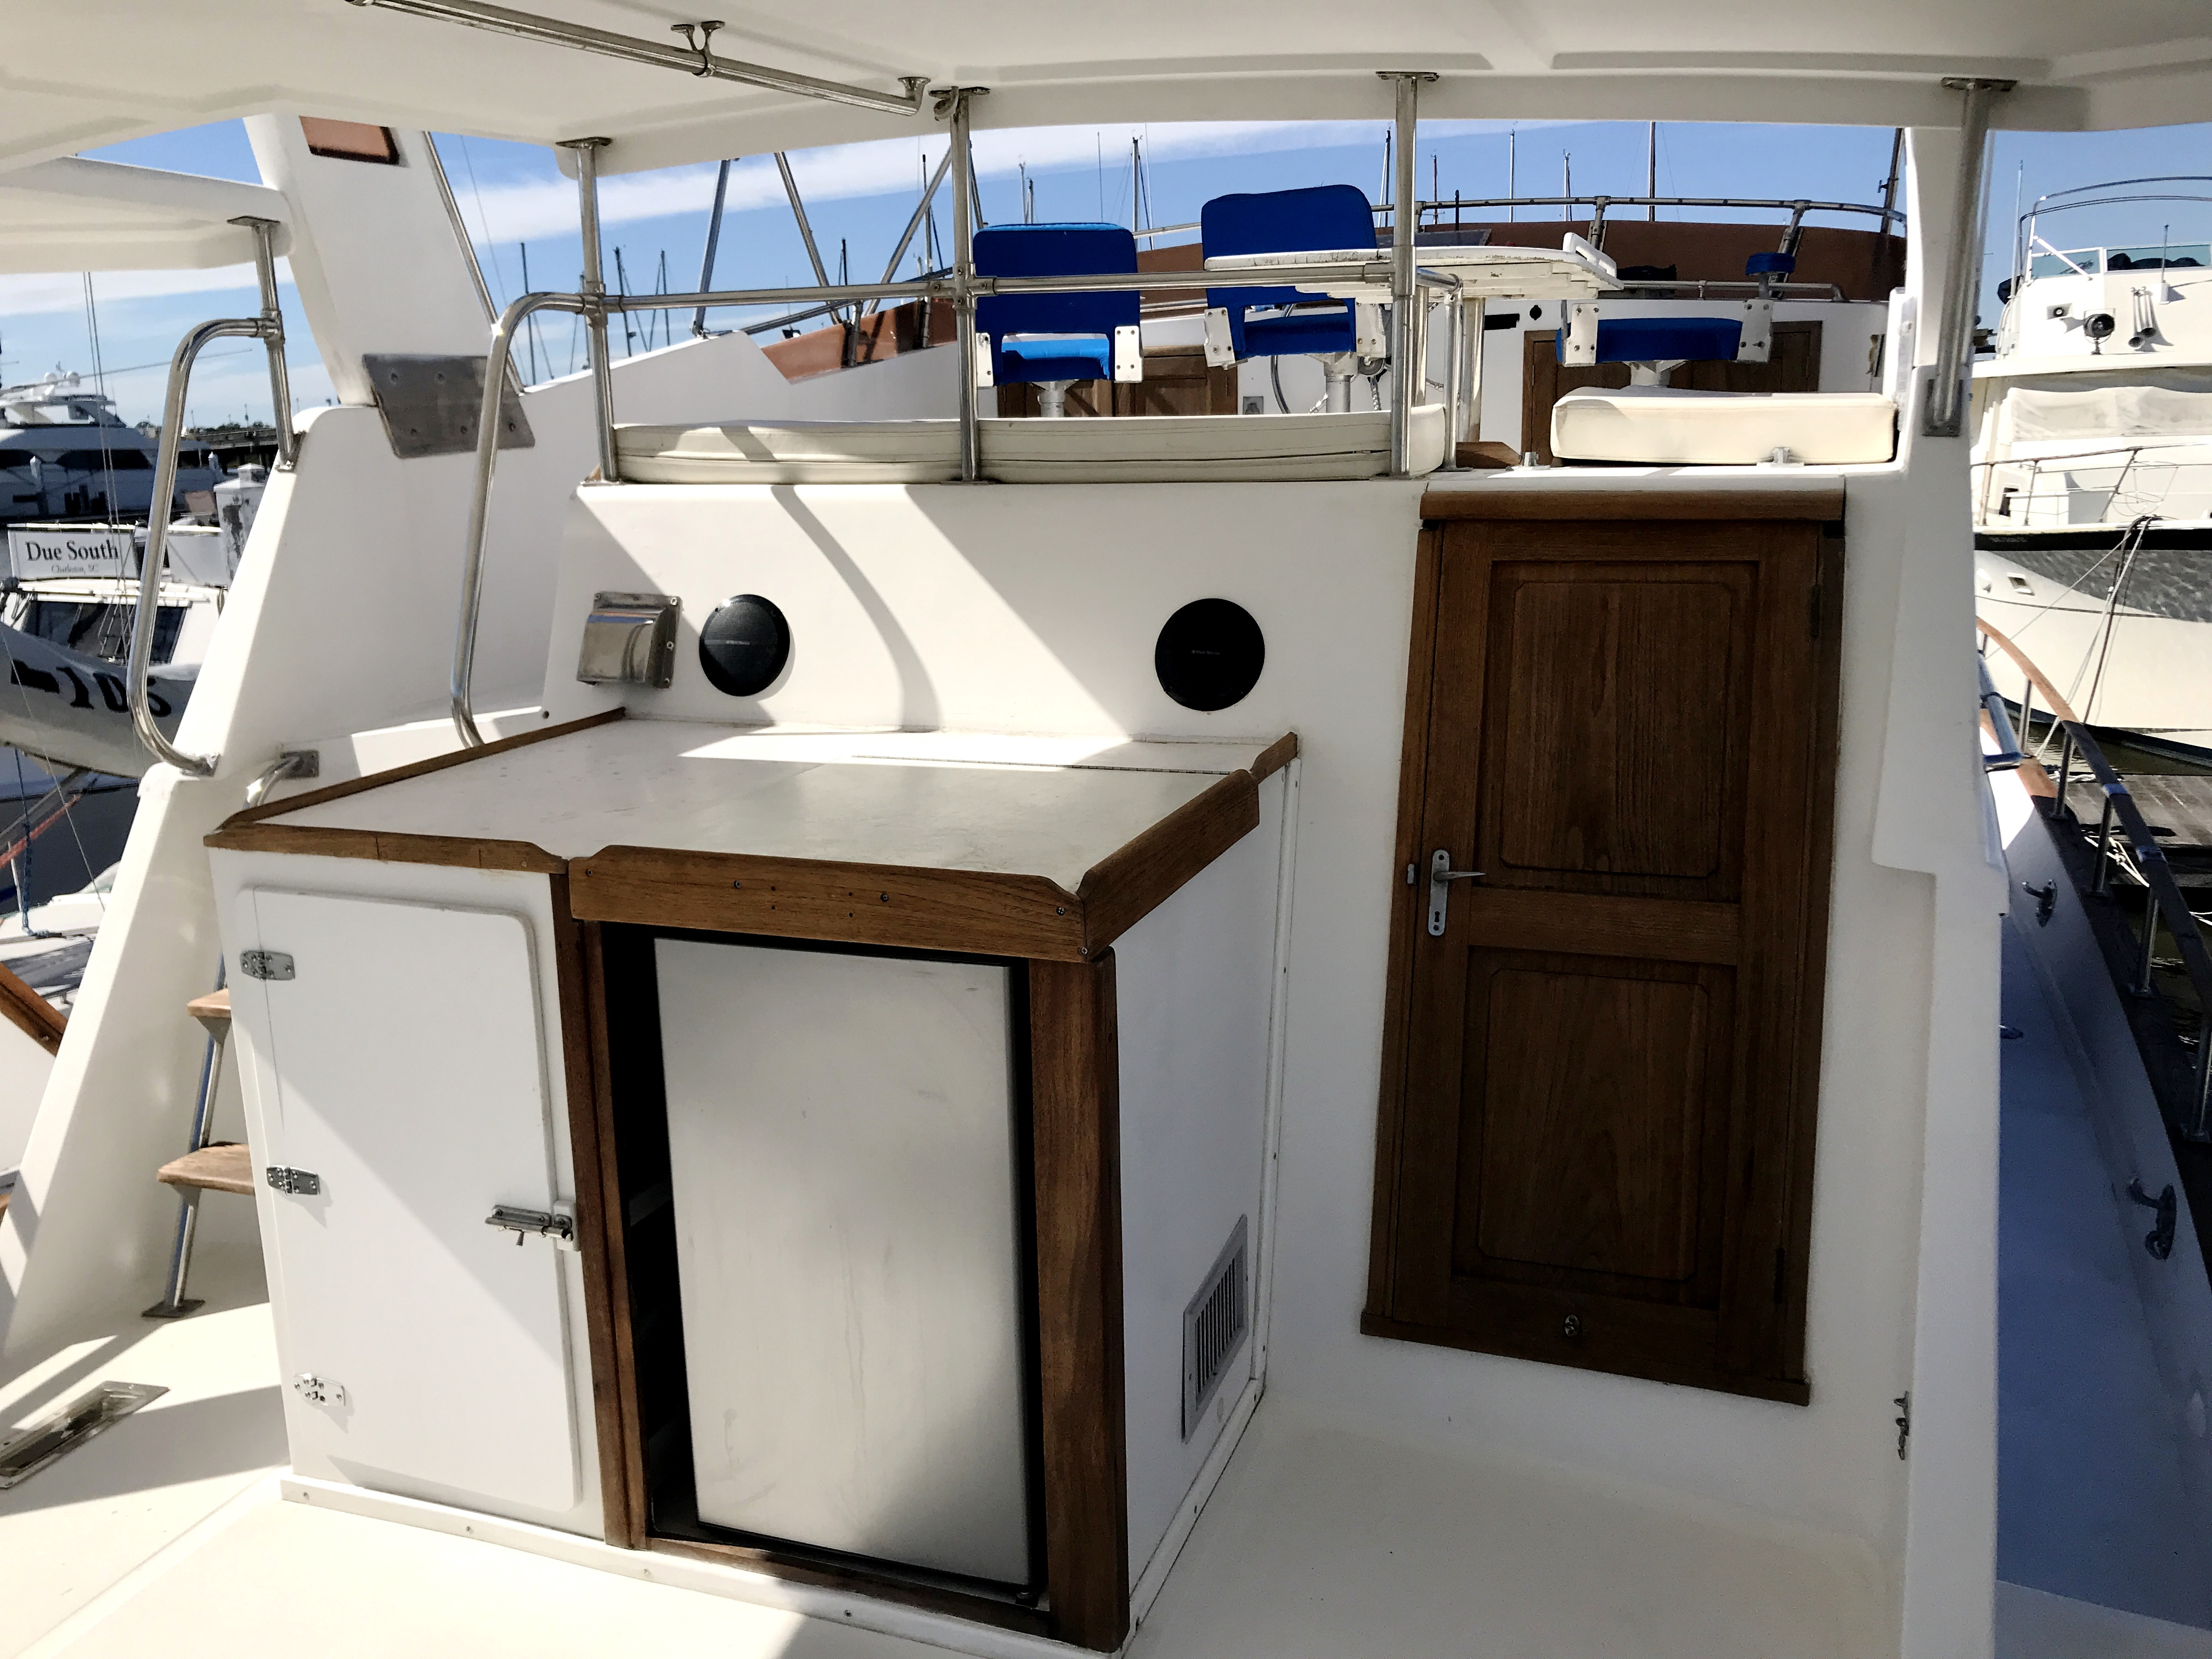 Sea Ranger SUNDECK - refrigerator and stowage